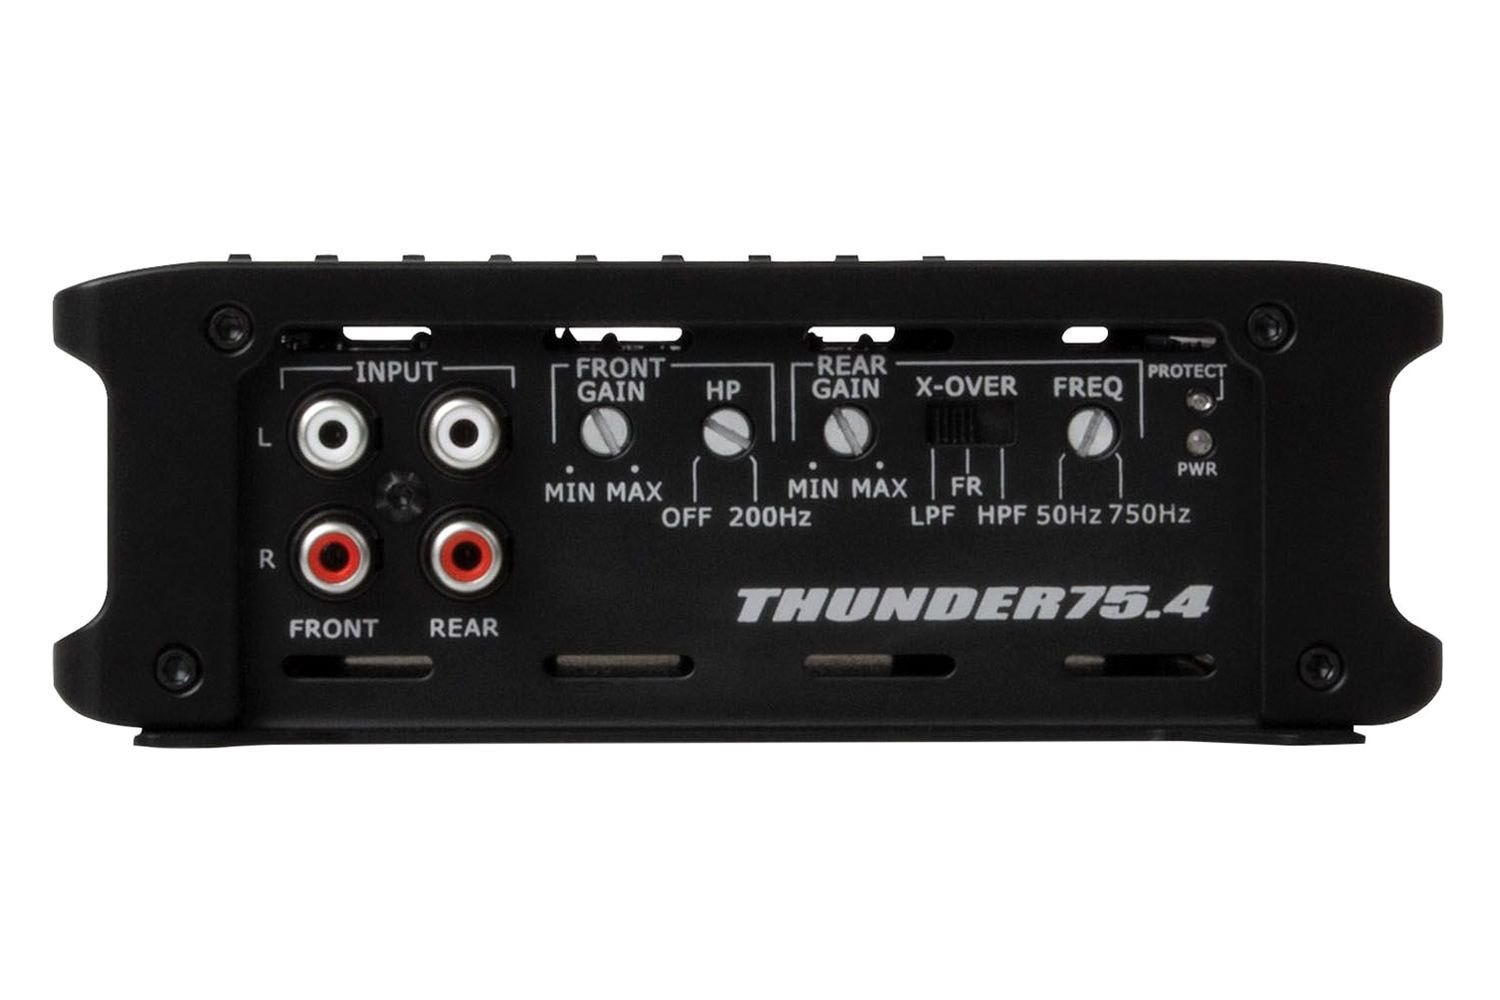 MTX® THUNDER75.4 - THUNDER Series Cl AB 4-Channel 400W Amplifier on 1 ohm stable wiring diagram, box wiring diagram, car stereo wiring diagram, alpine type r wiring diagram, 99 yukon wiring diagram, hid relay wiring diagram, mtx 9500 wiring diagram, alpine type x wiring diagram, rockford wiring diagram, kenwood wiring diagram, amplifier wiring diagram, audiobahn wiring diagram, car amplifier diagram, 5.1 speaker wiring diagram, hifonics wiring diagram, amp installation diagram, car cd player wiring diagram, kicker wiring diagram, subwoofer wiring diagram, mtx amp repair,